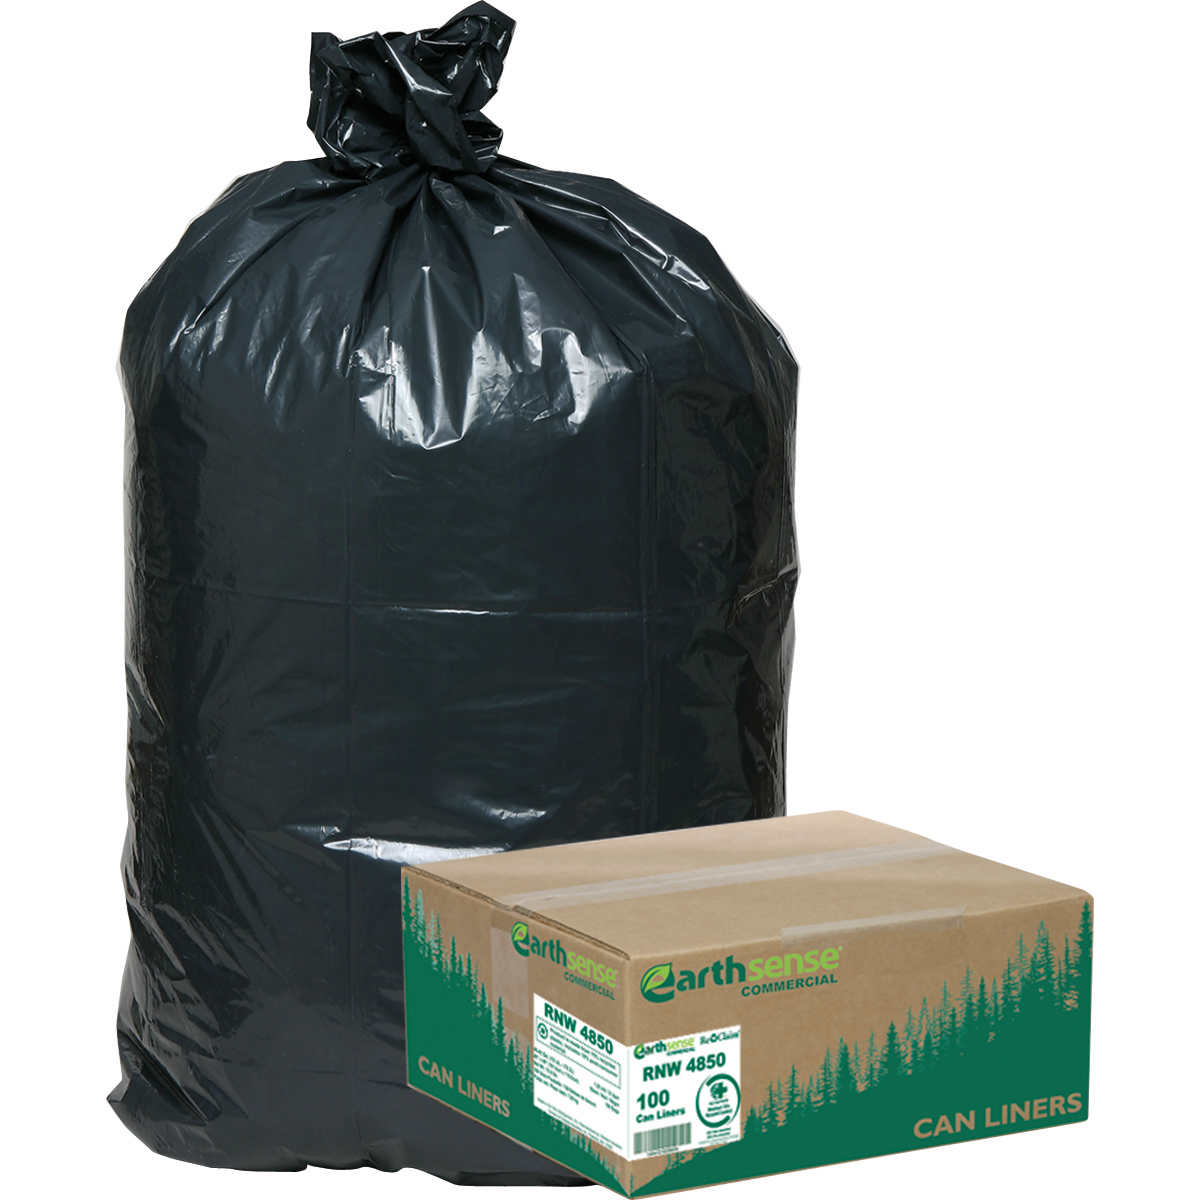 Earthsense Recycled Star Bottom Trash Bags 40 45 Gal Black 100 Count